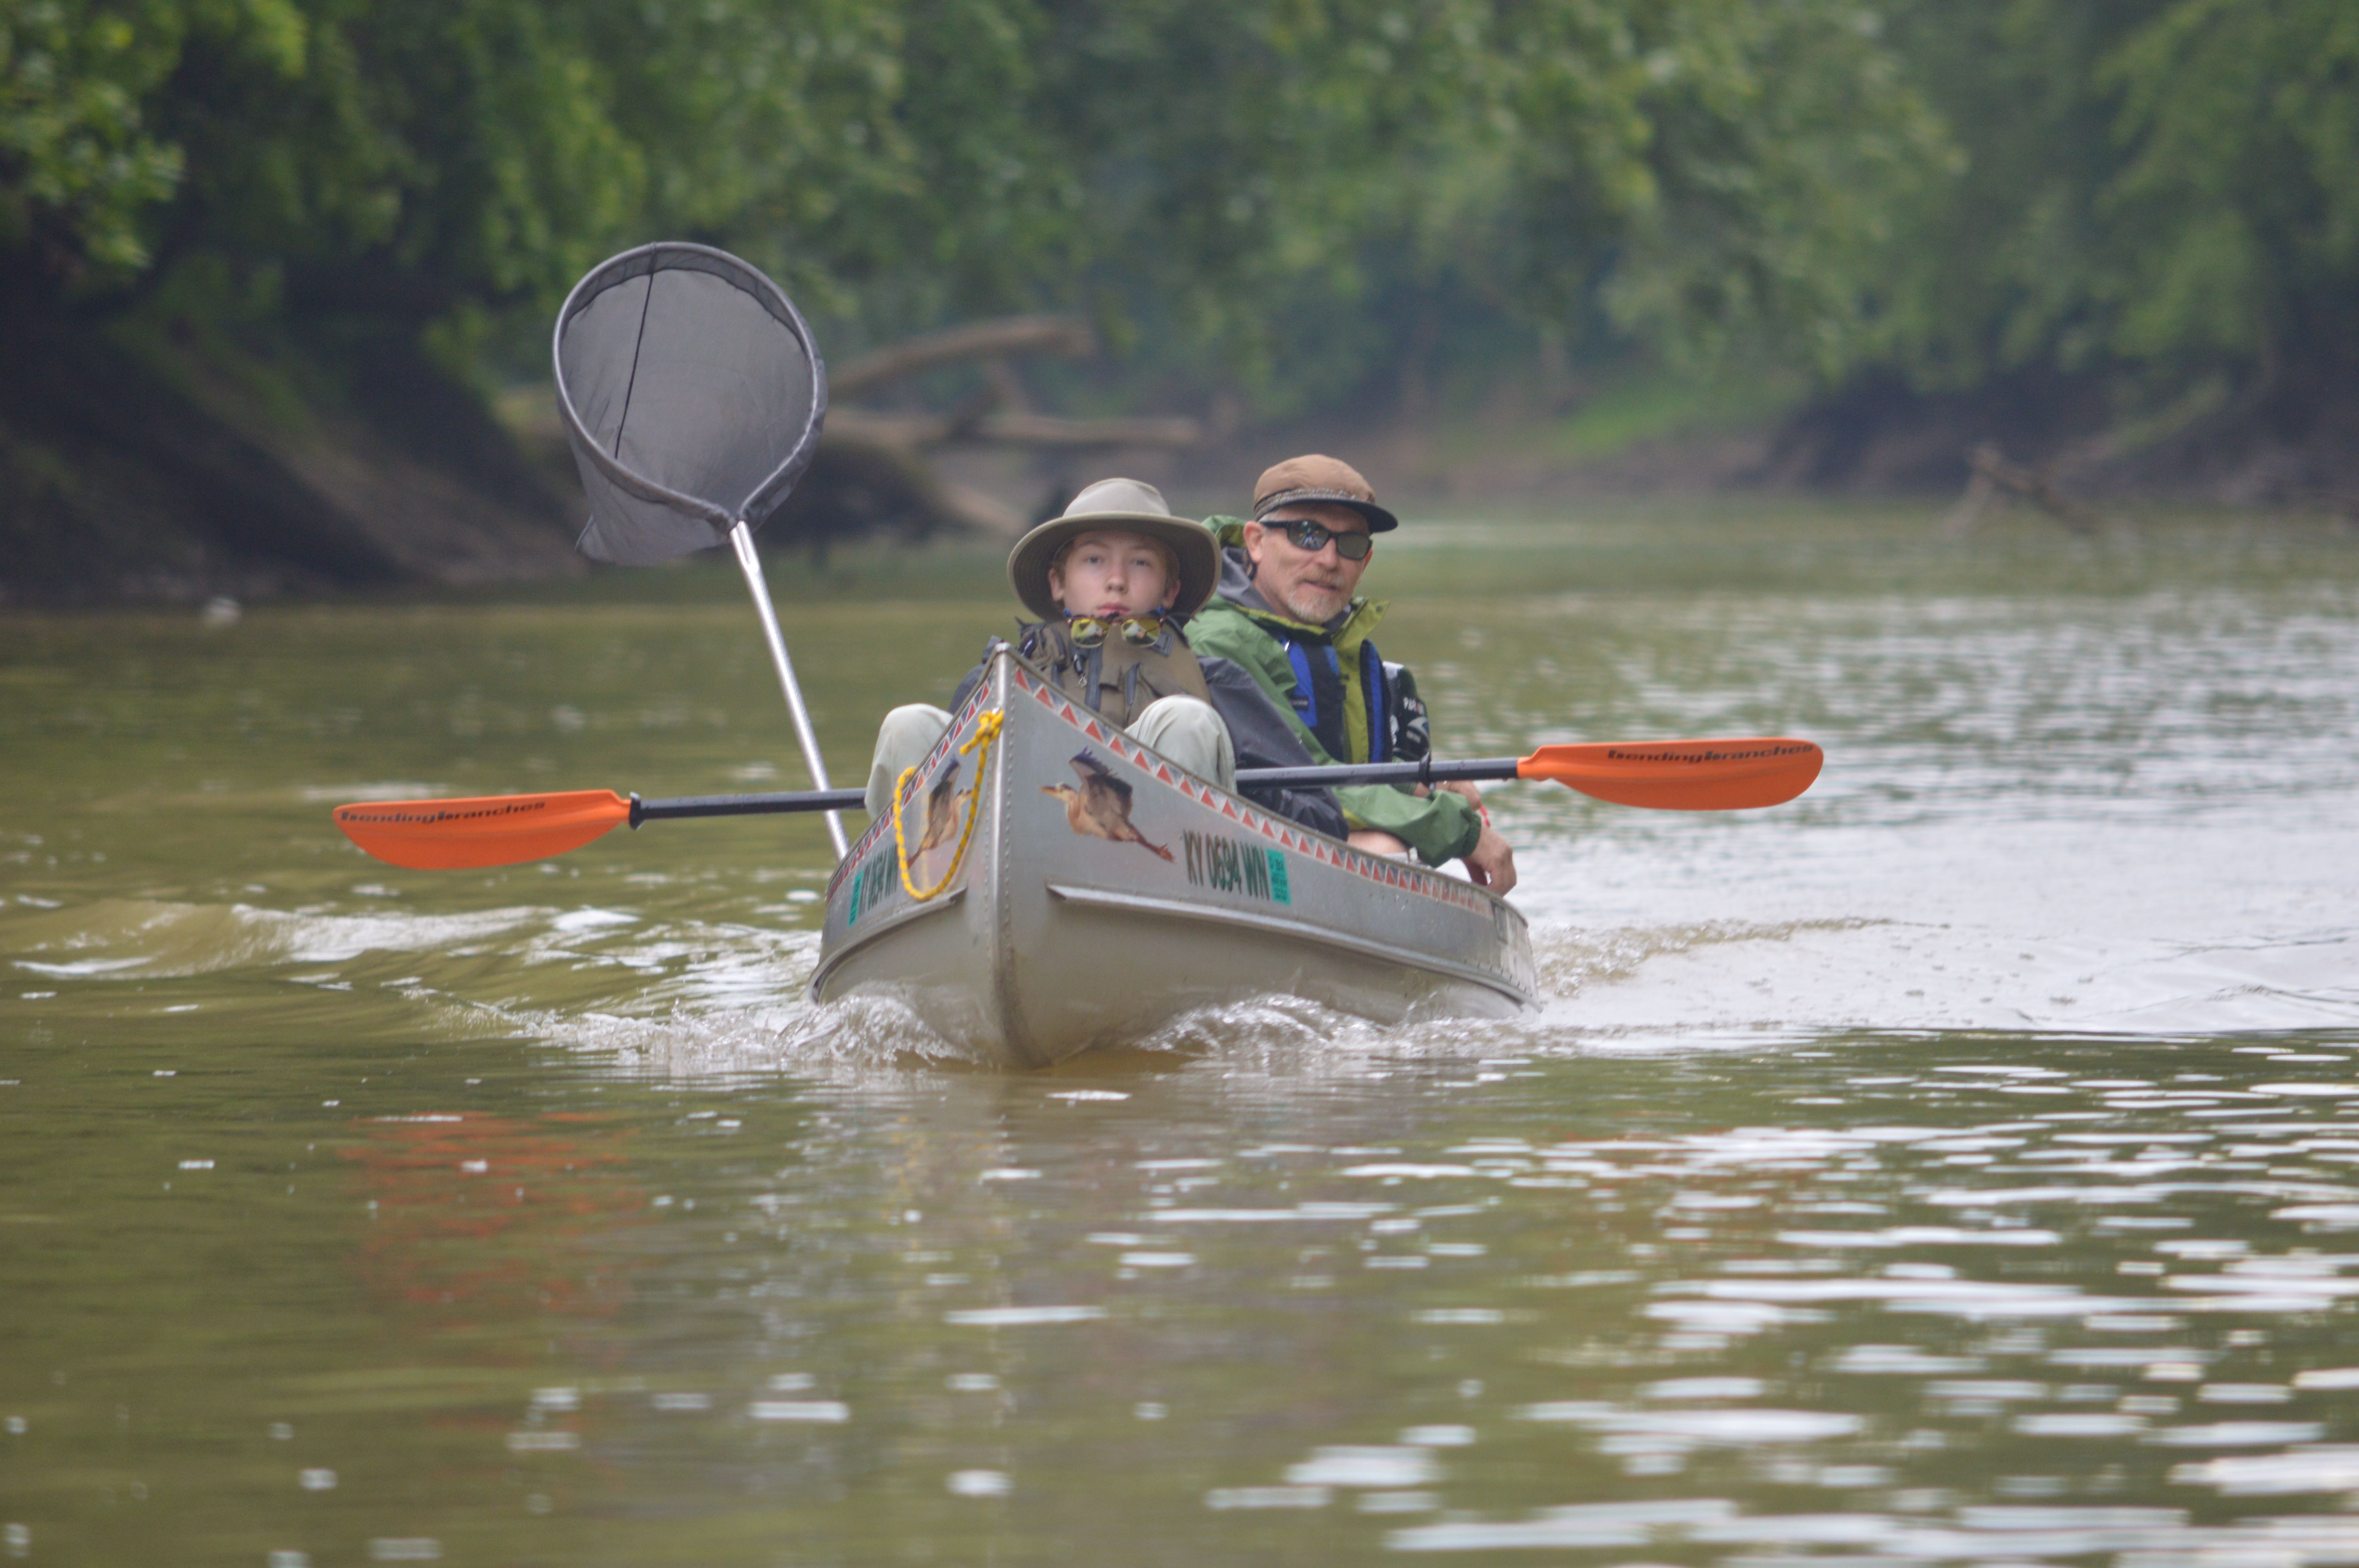 Bruce Hutcheson, and his 15-year-old son Kevin on the Licking River (Photo by Andy Mead)